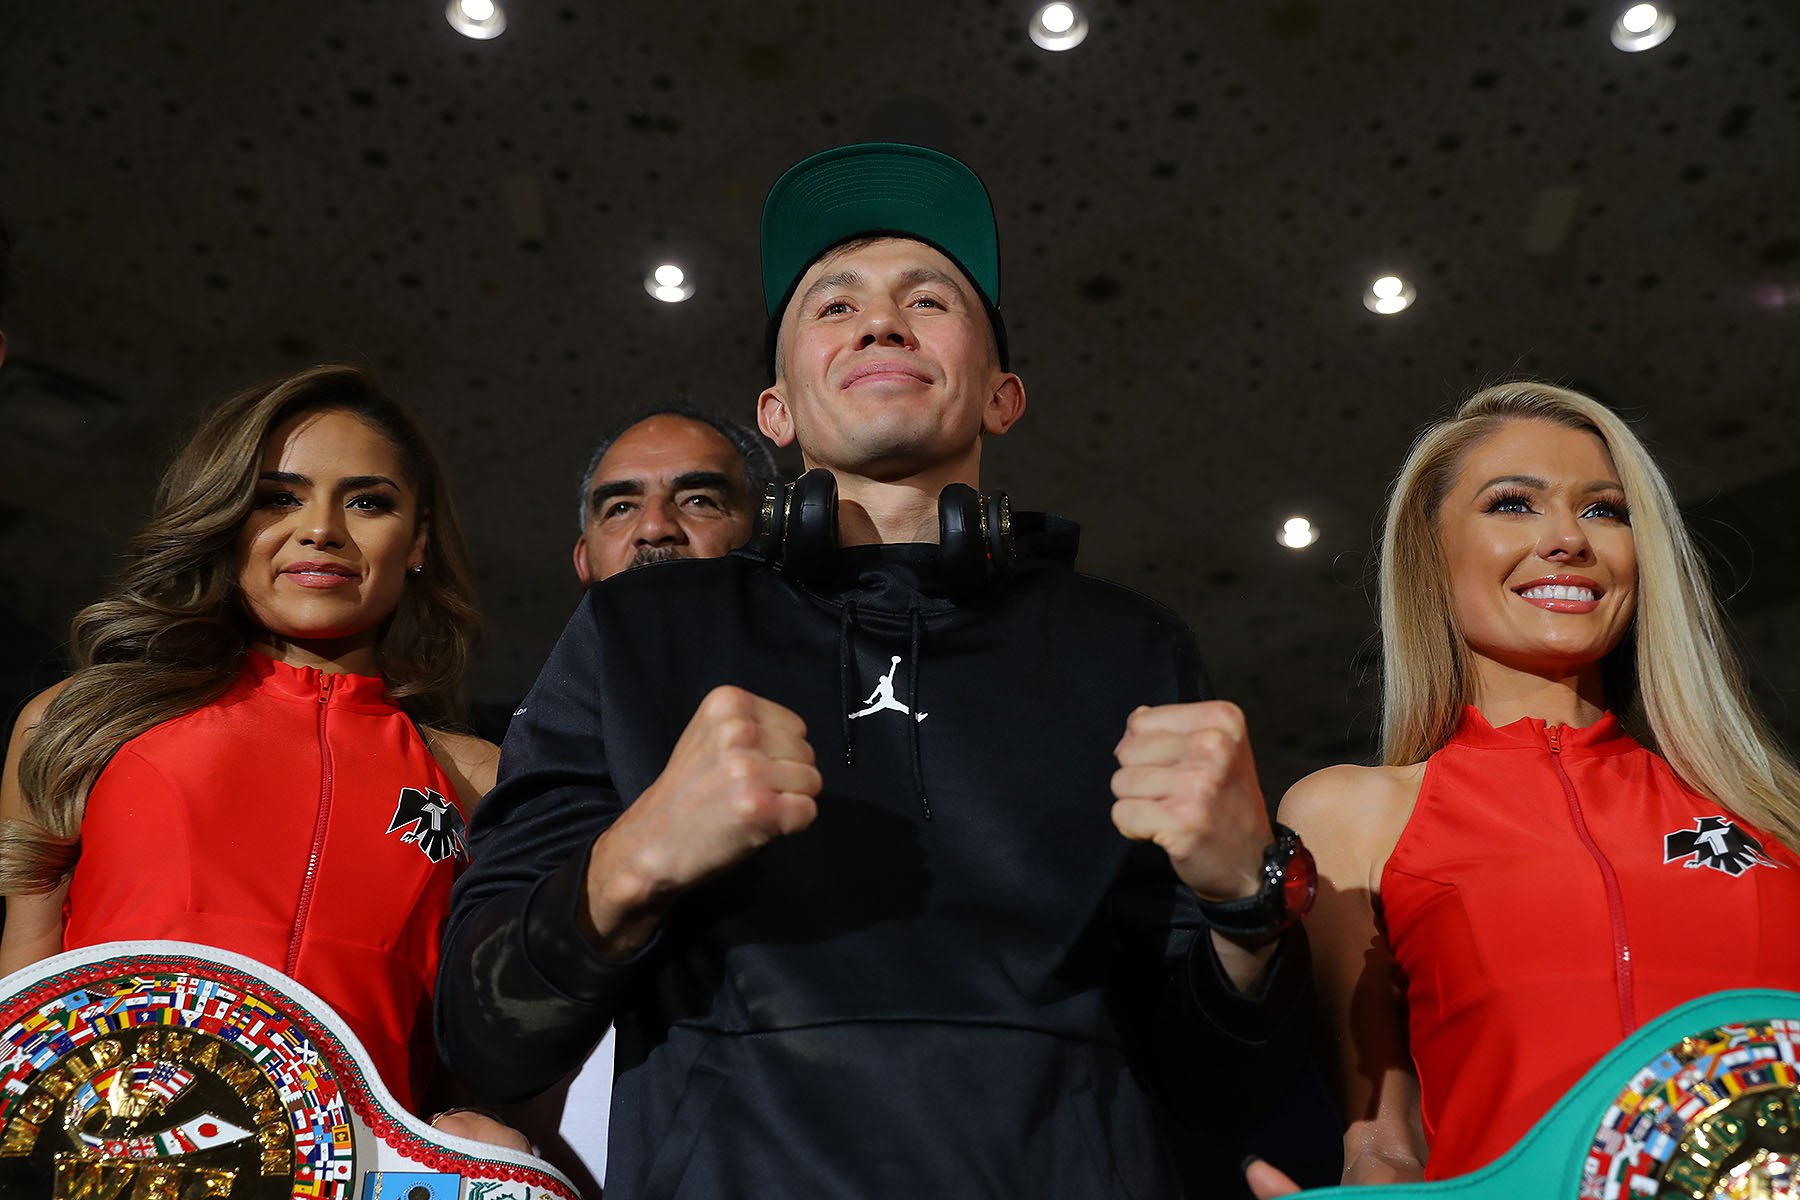 Golovkin Promises A Knockout Of Canelo If He Stands and Fights